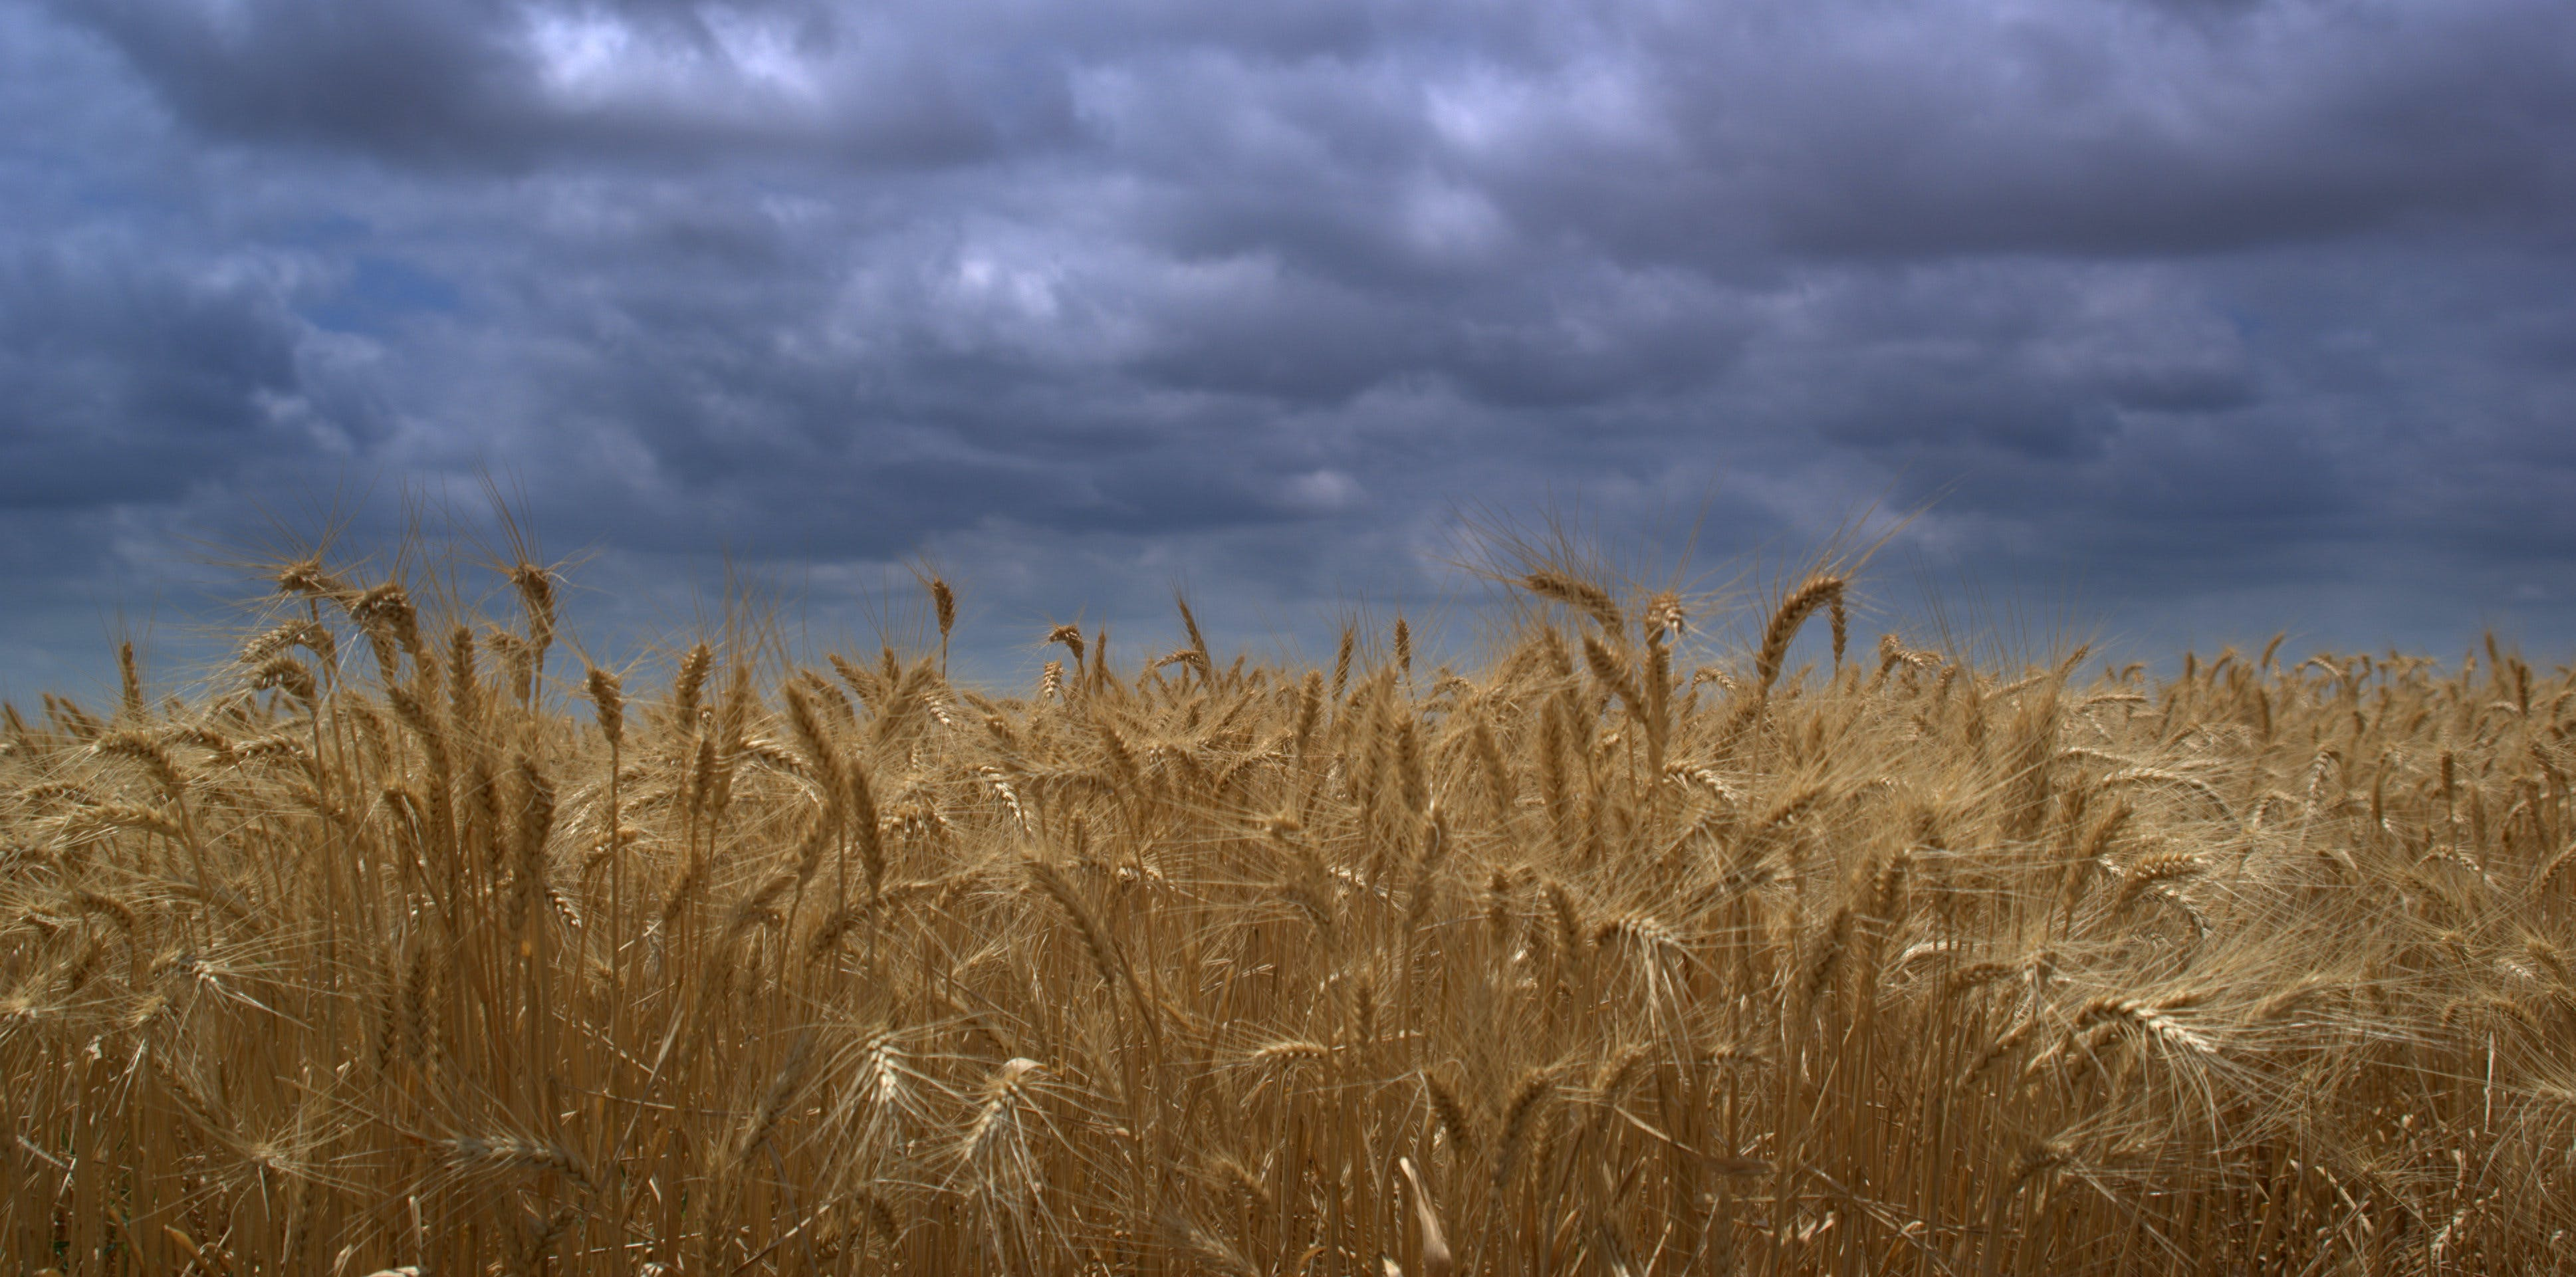 Free stock photo of amber waves, cloudy skies, dramatic sky, texas